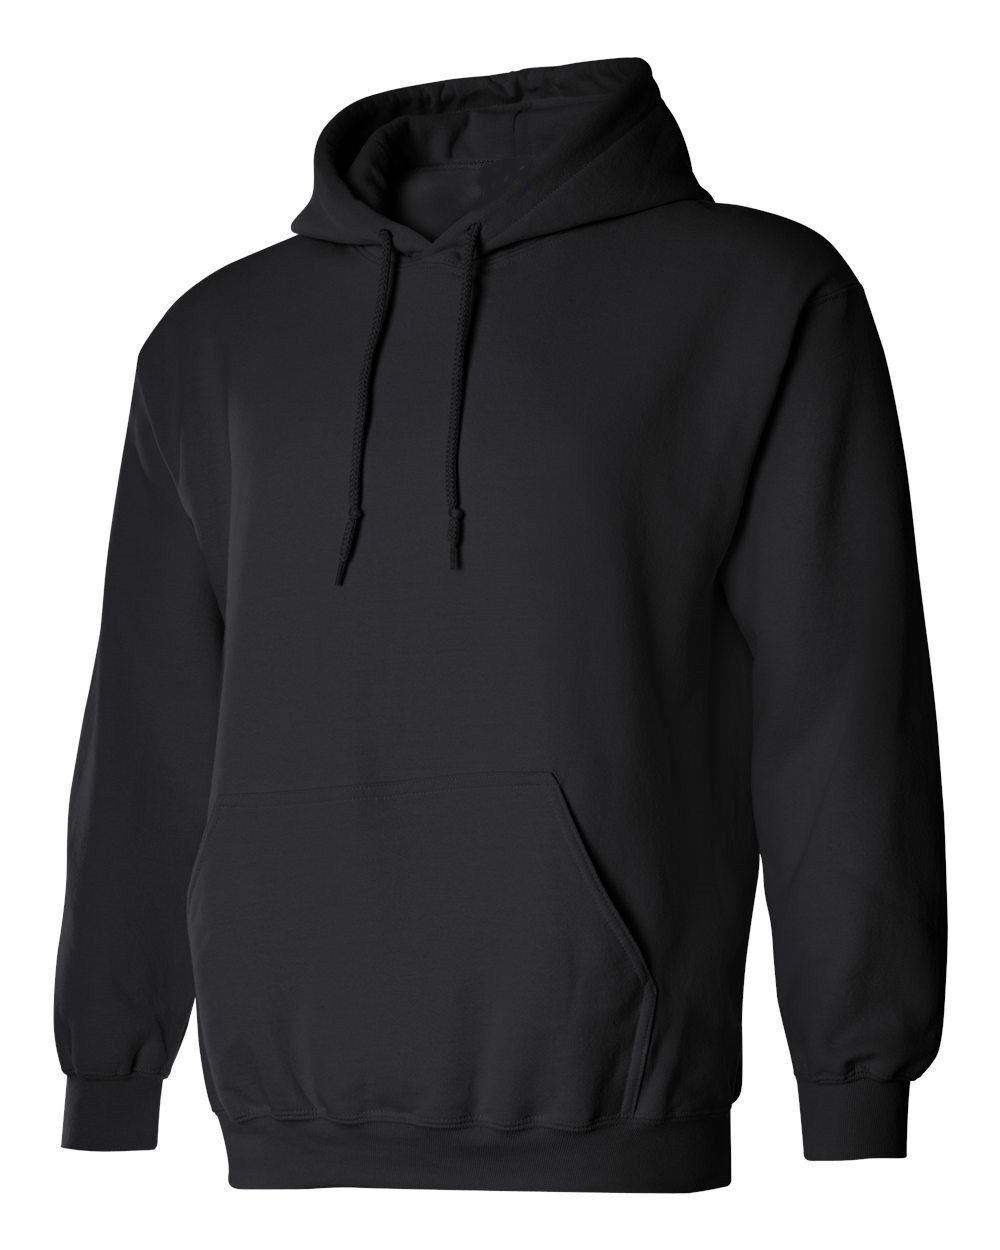 Find Plain Black Women's Hoodies & Sweatshirts in a variety of colors and styles from slim fit hoodies with a kangaroo pocket & double lined hood to zippered hoodies.